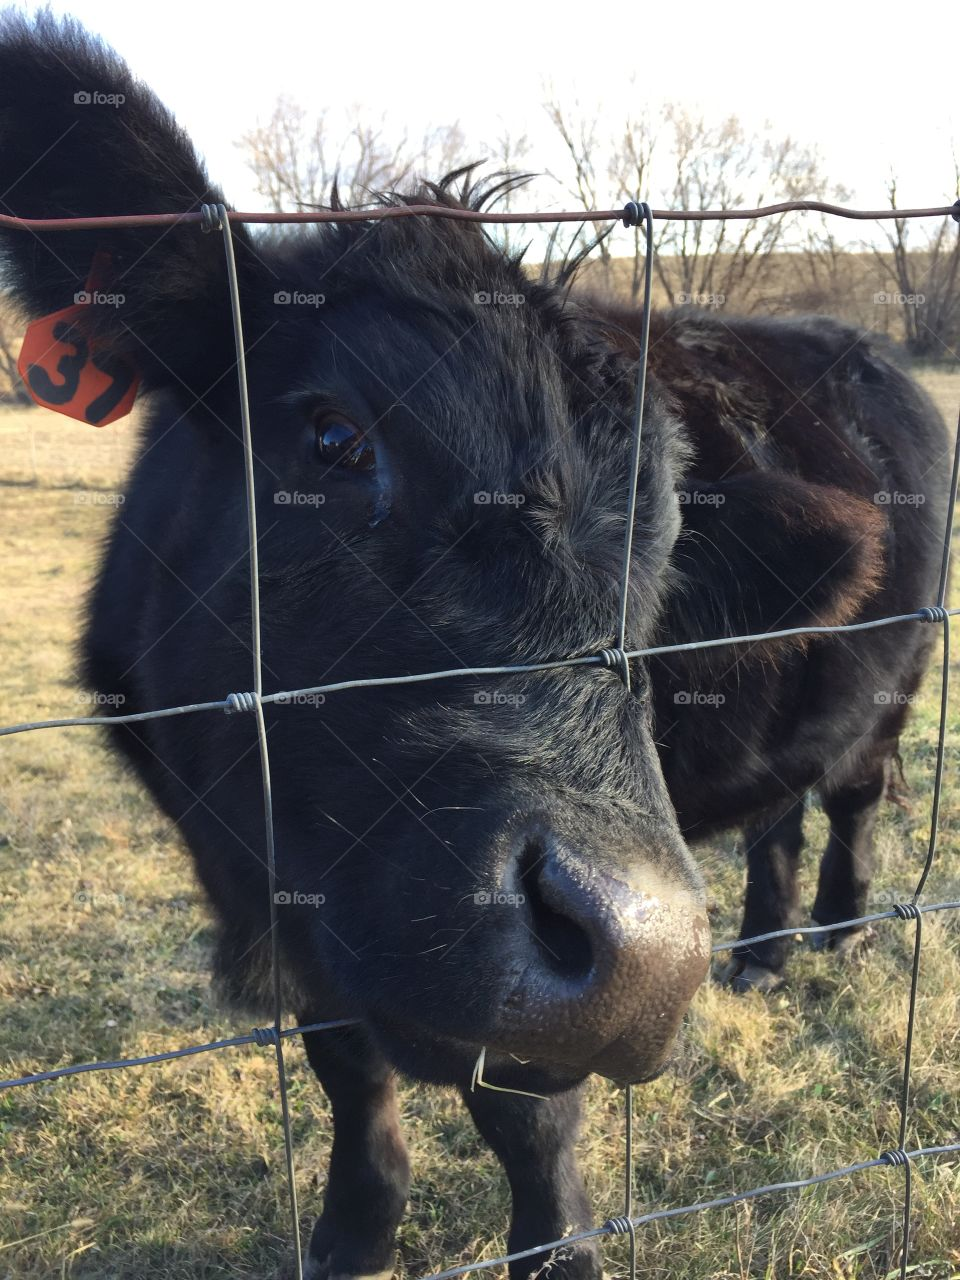 A cute and curious black steer pokes his nose through a wire fence hoping for something green to eat - the pasture is getting bare!